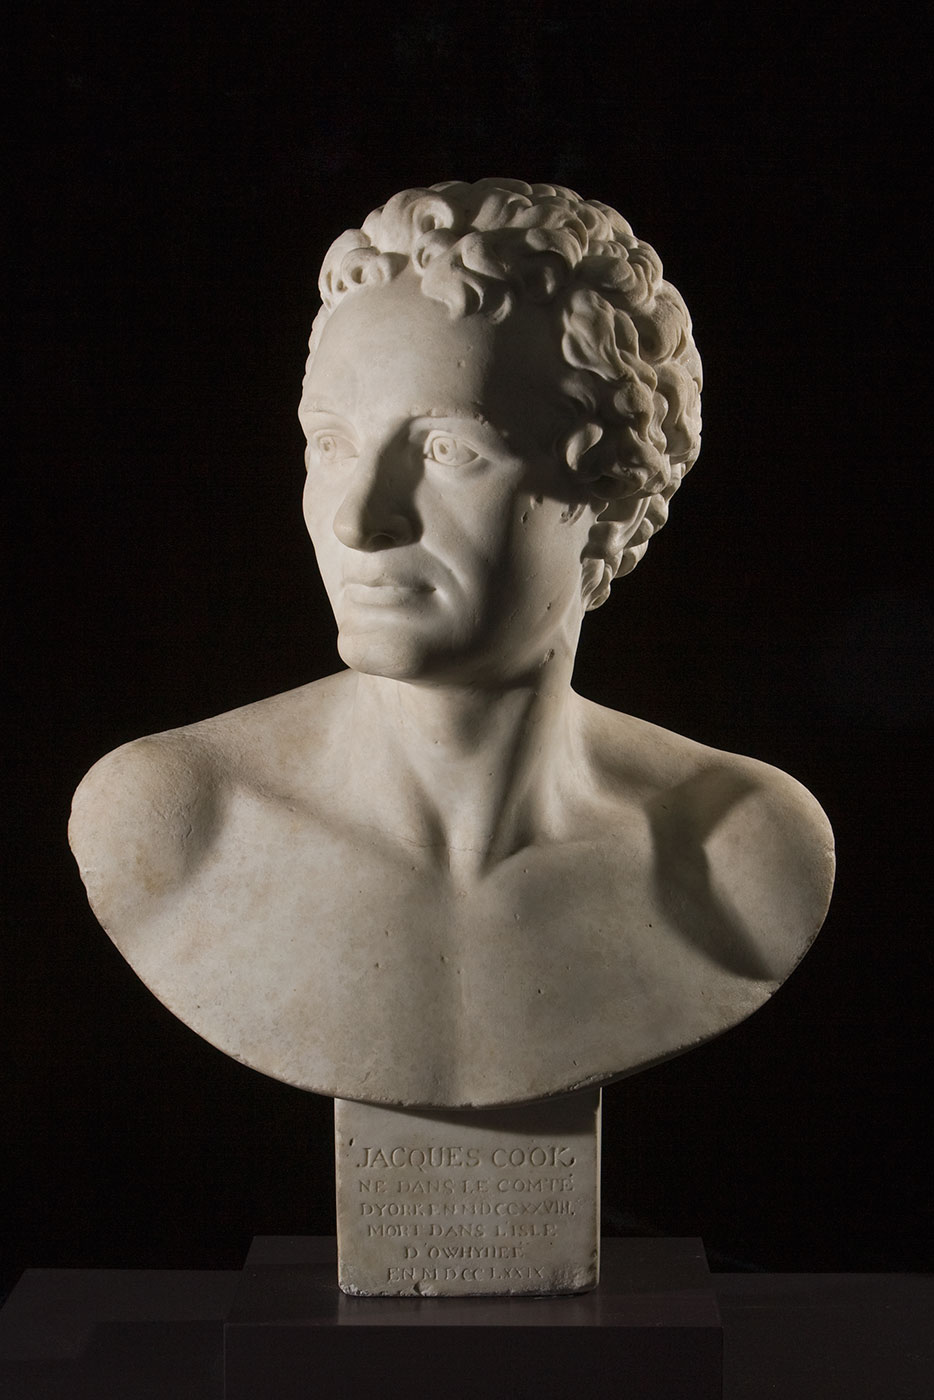 Marble bust of Captain James Cook with an inscription in French on the base.